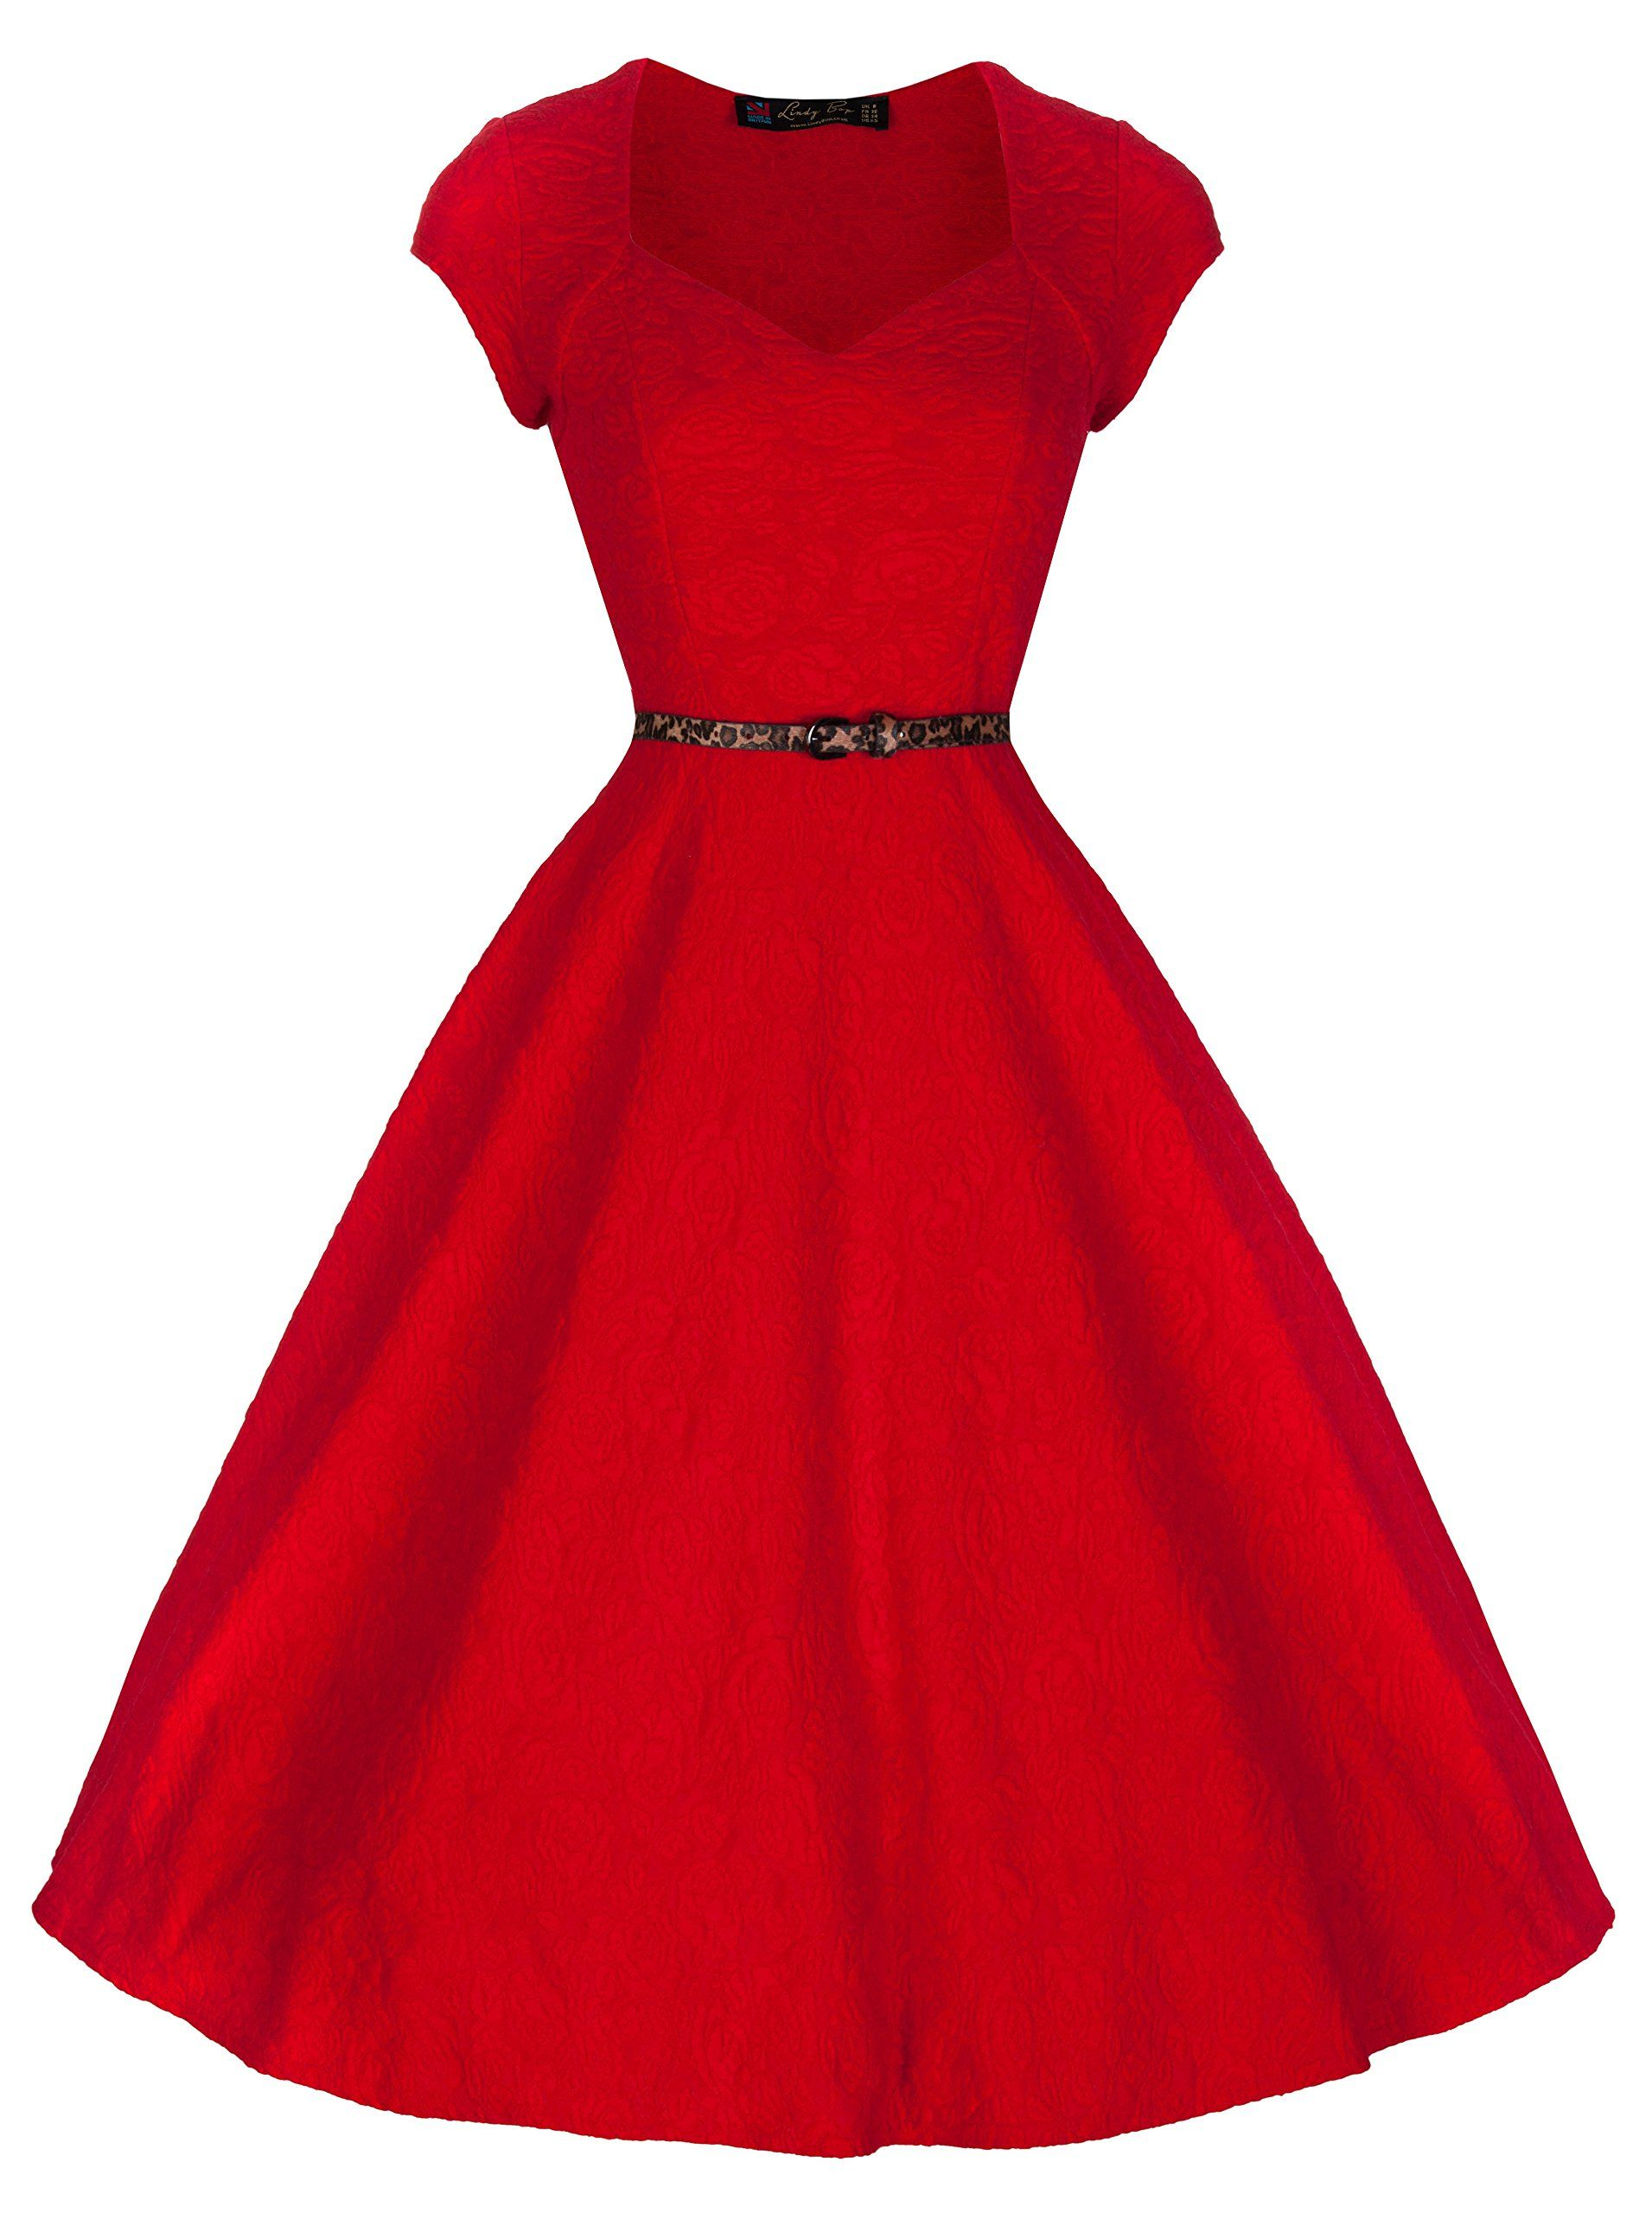 Vintage Red 50s Rockabilly Bridesmaid Lace Swing Cocktail Retro Dress Plus